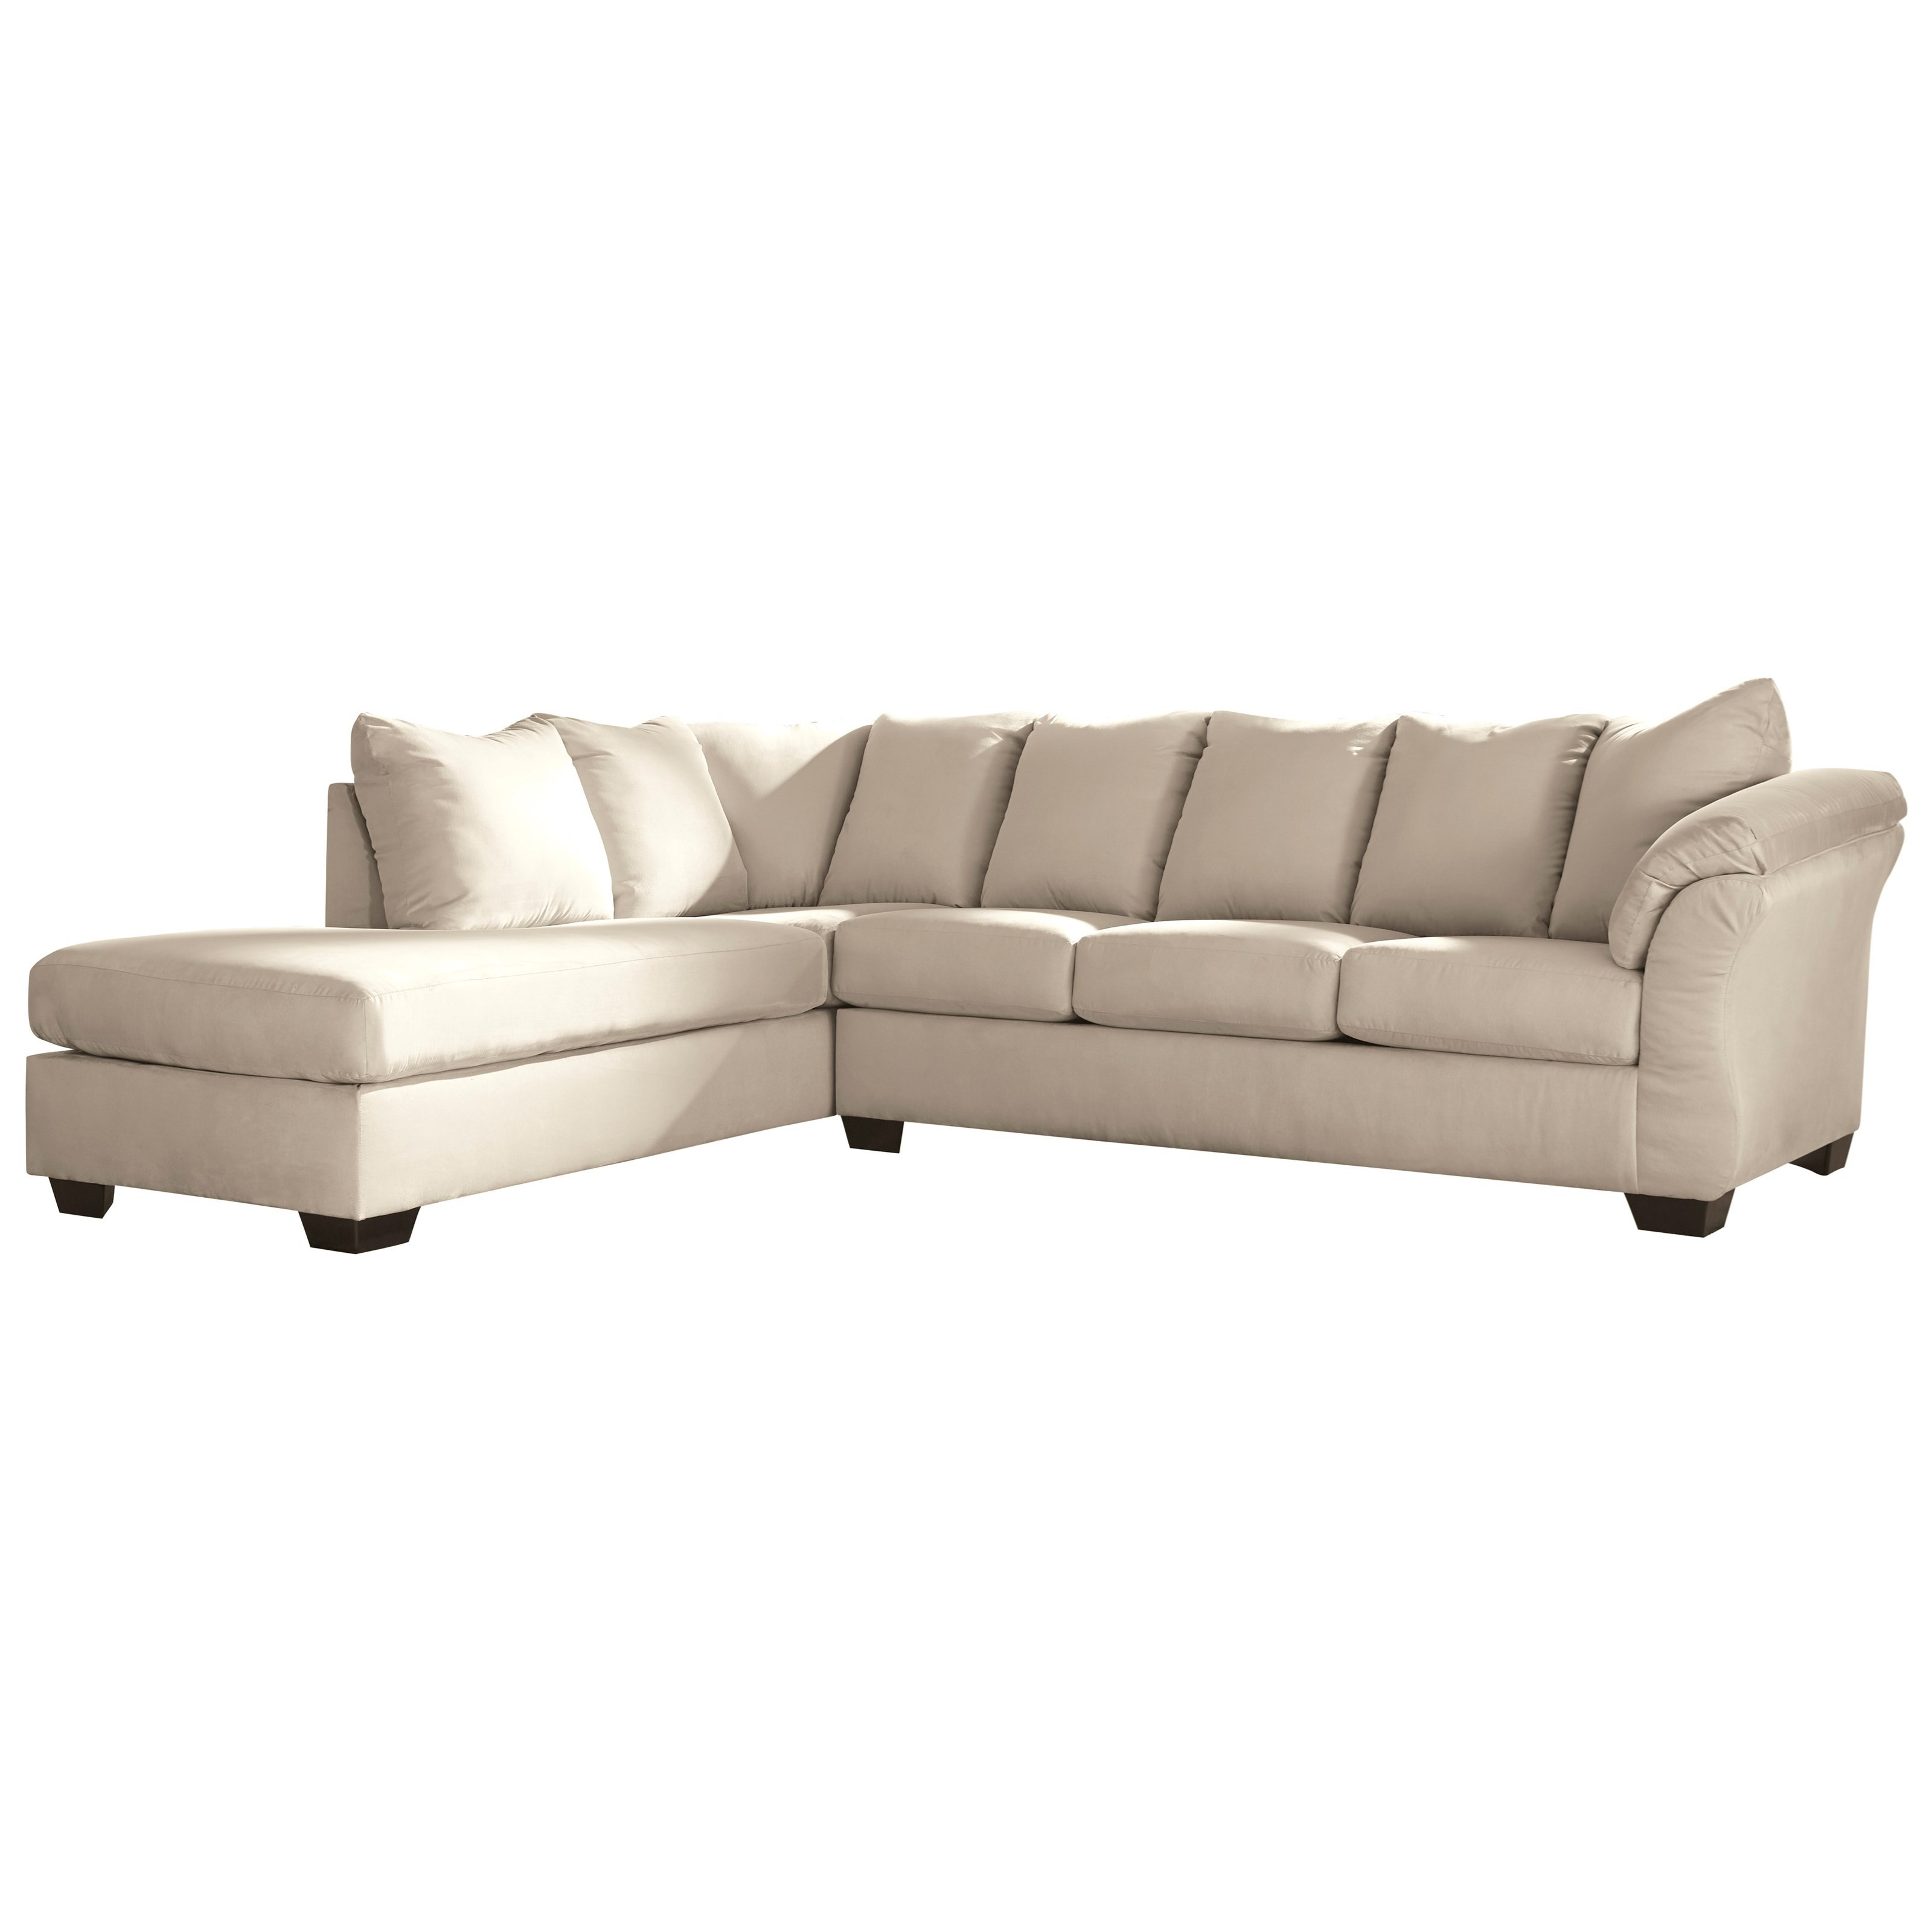 Darcy - Stone 2-Piece Sectional Sofa with Chaise by Signature Design by Ashley at Simply Home by Lindy's